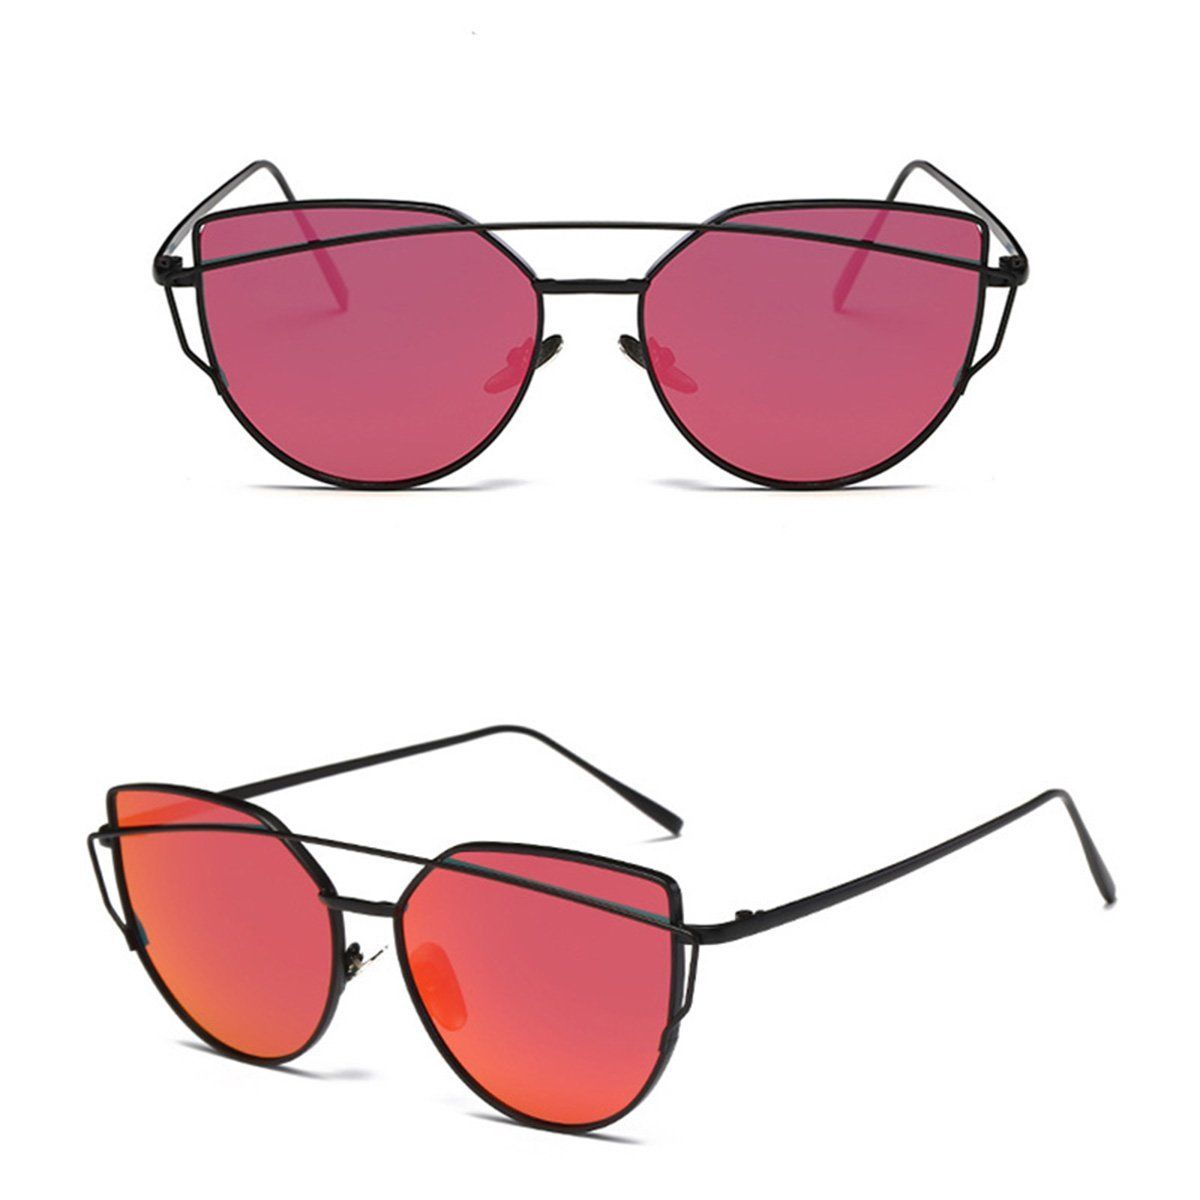 683f96146 Oversized Female Sunglasses - Mirrored - All Silver Red Pink